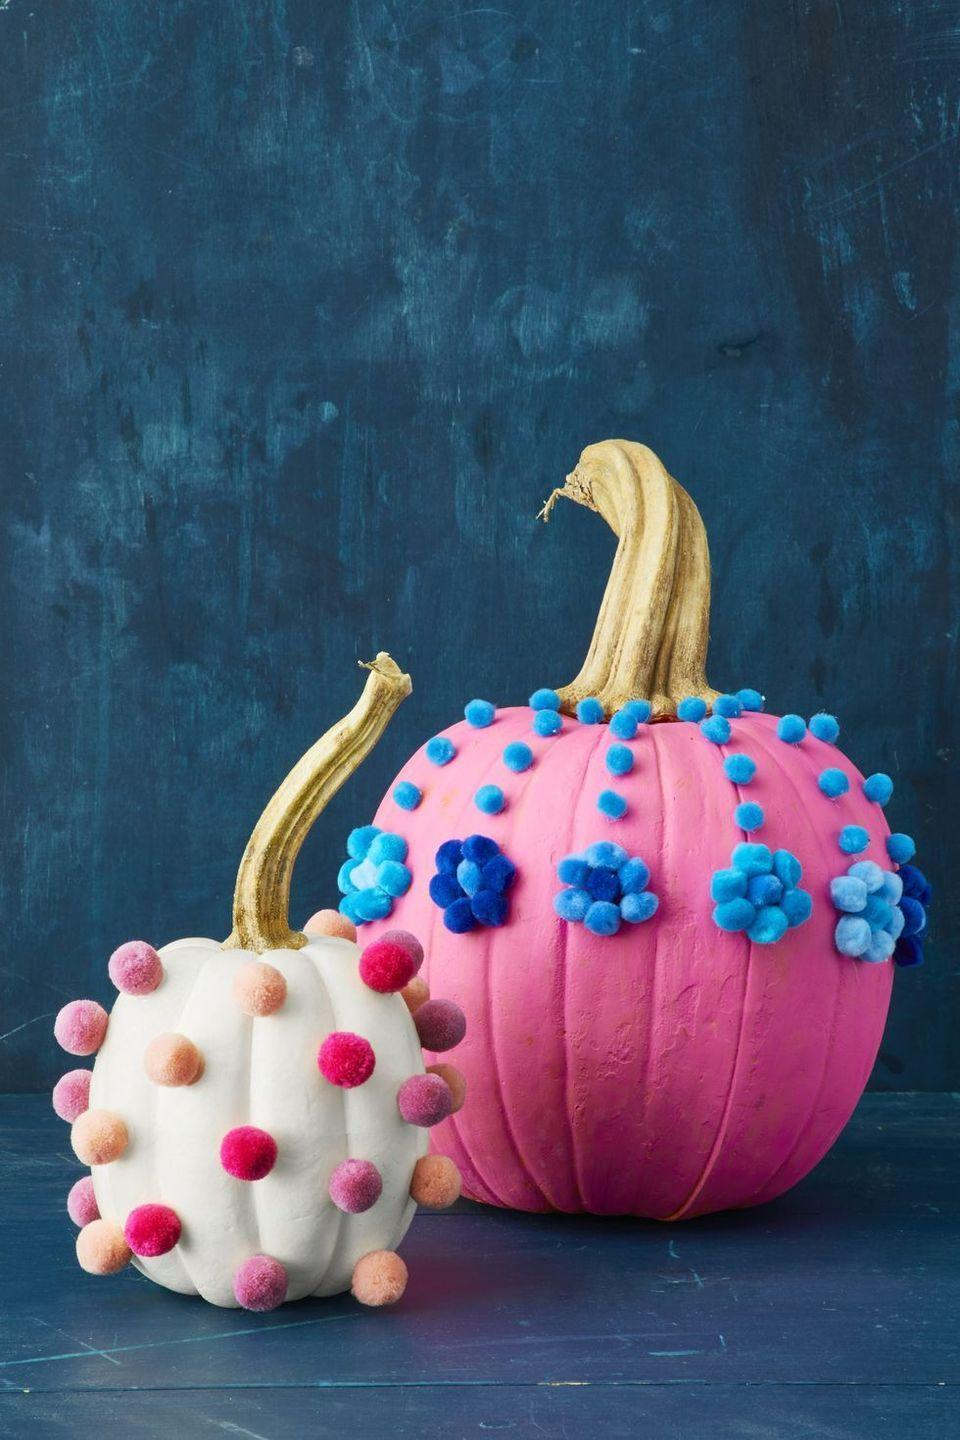 """<p>Dress painted pumpkins up in colorful pom poms for a playful look that's perfect for a festive celebration with children in attendance. </p><p><a class=""""link rapid-noclick-resp"""" href=""""https://go.redirectingat.com?id=74968X1596630&url=https%3A%2F%2Fwww.michaels.com%2Fcreatology-pom-poms-christmas-mix%2F10580712.html&sref=https%3A%2F%2Fwww.goodhousekeeping.com%2Fholidays%2Fhalloween-ideas%2Fg33437890%2Fhalloween-table-decorations-centerpieces%2F"""" rel=""""nofollow noopener"""" target=""""_blank"""" data-ylk=""""slk:SHOP POM POMS"""">SHOP POM POMS</a></p>"""